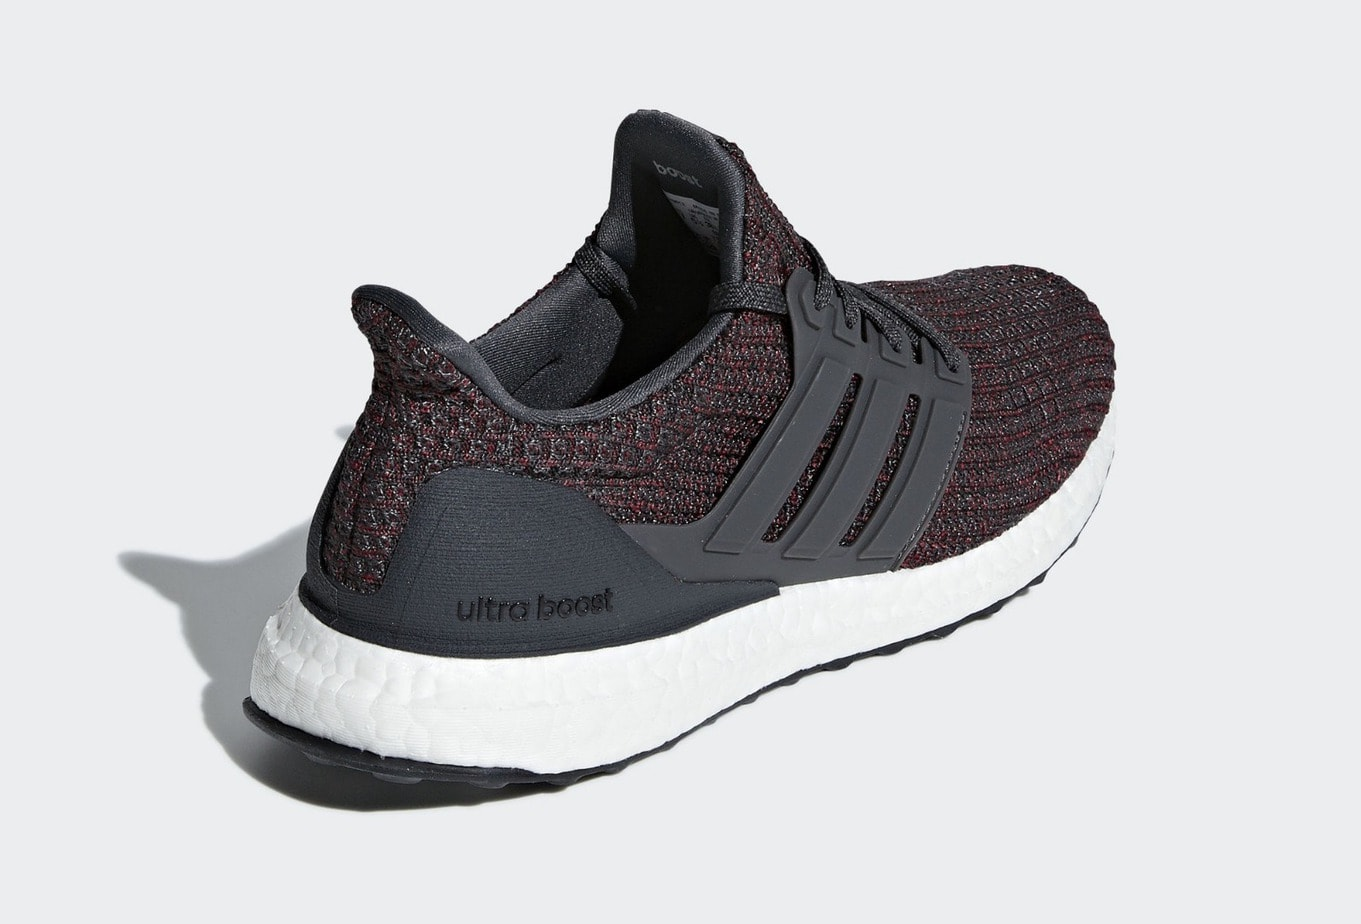 6a4ef0672f4 ... inexpensive adidas ultra boost 4.0. release date september 15th 2018.  price 180. color